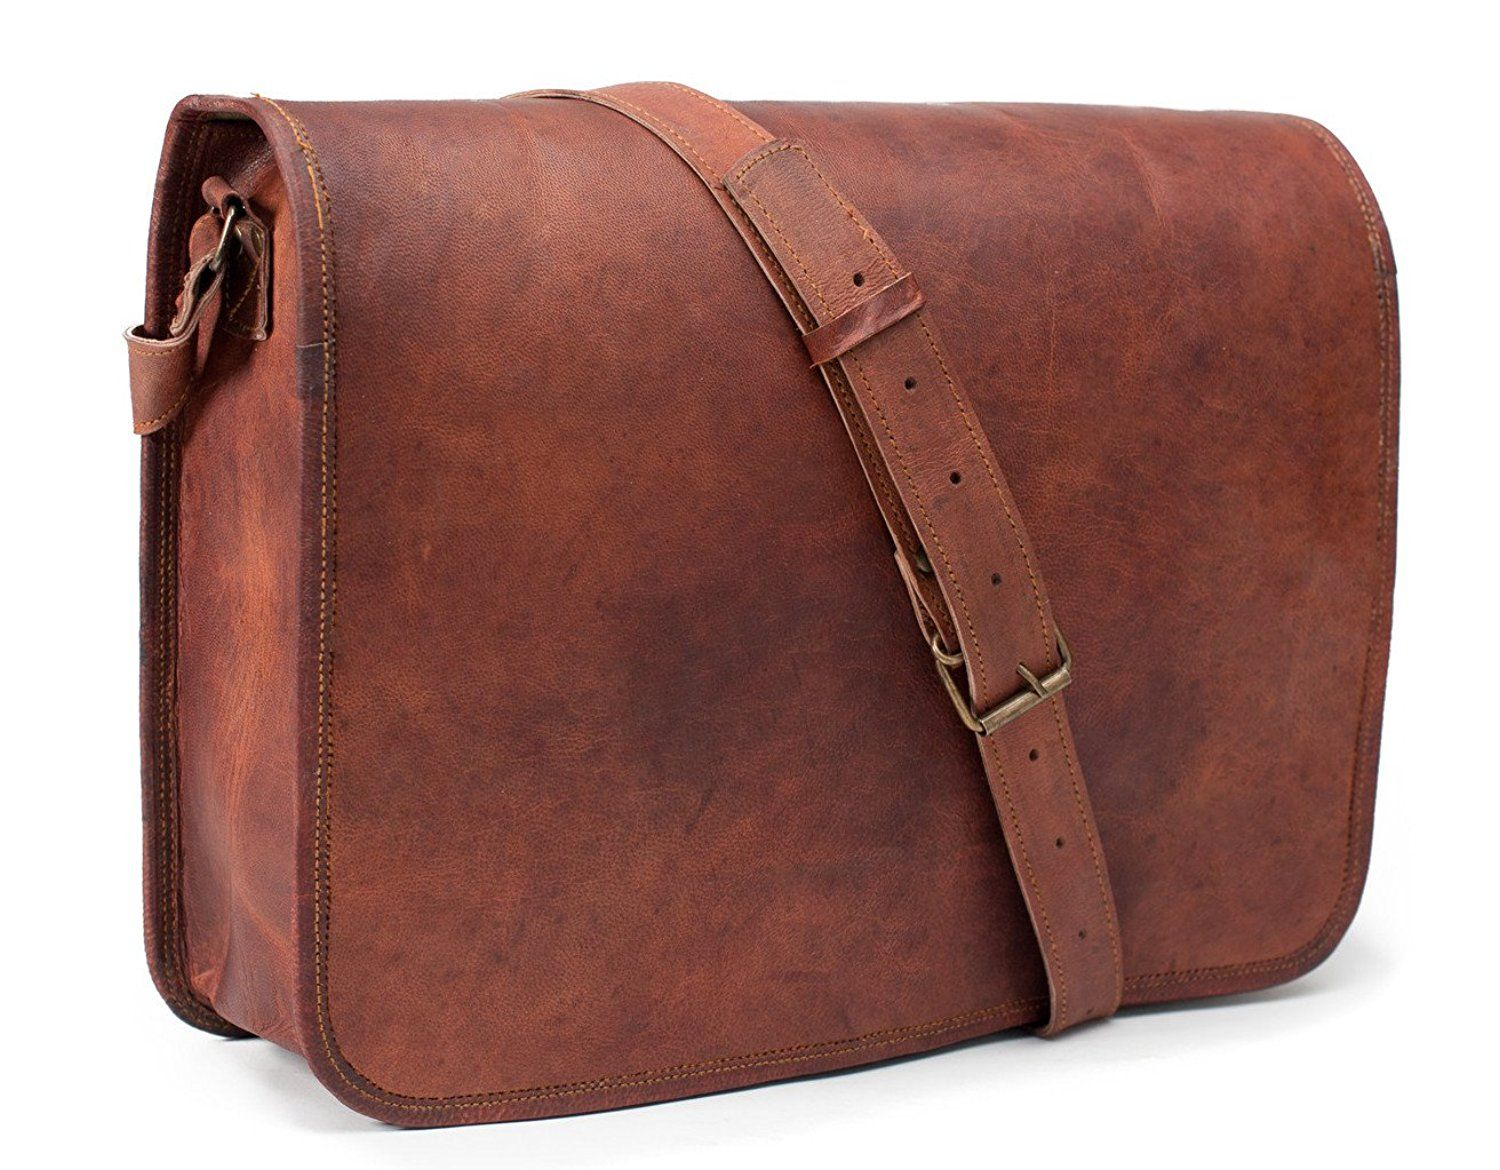 LUST Leather Messenger Bag for Men Leather Laptop Bag Shoulder Bag    You  can find more details by visiting the image link. (This is an Amazon  Affiliate ... bb3d7a904838a